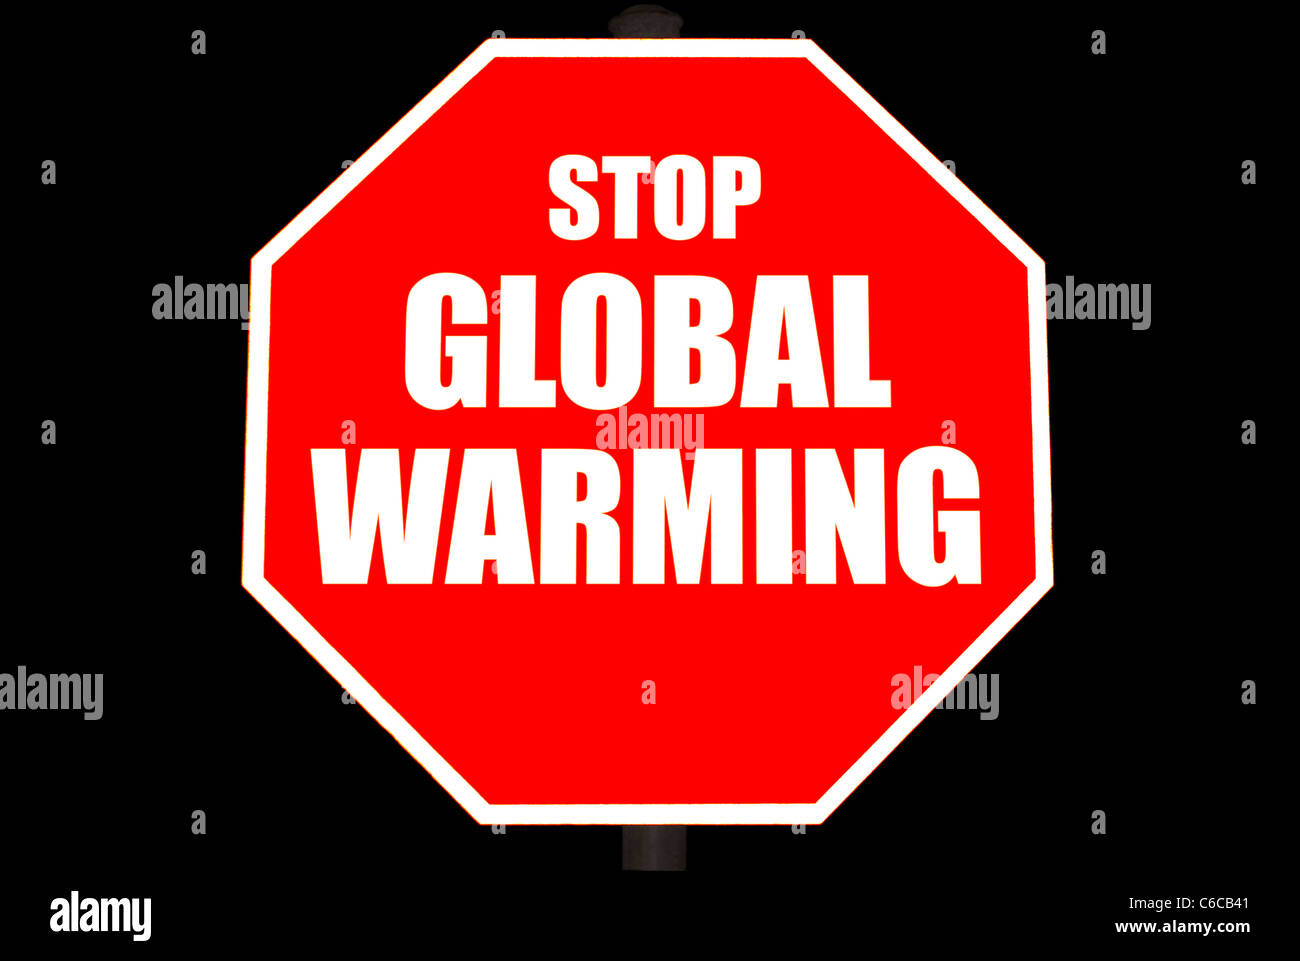 Bright red stop sign with STOP GLOBAL WARMING on it isolated on black - Stock Image